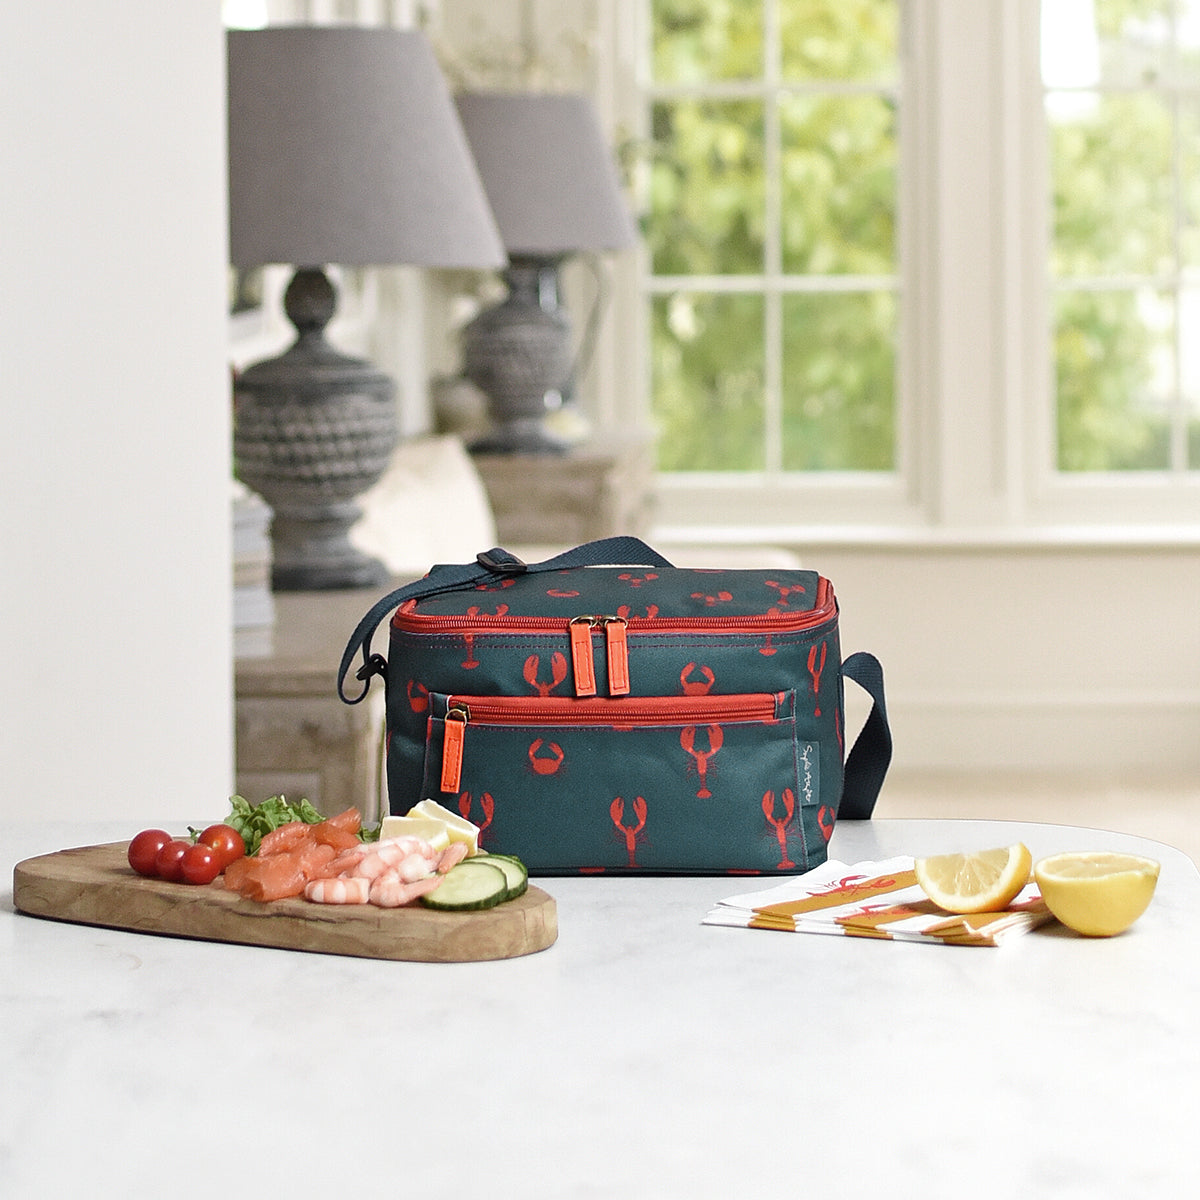 Lobster lunch bag by Sophie Allport